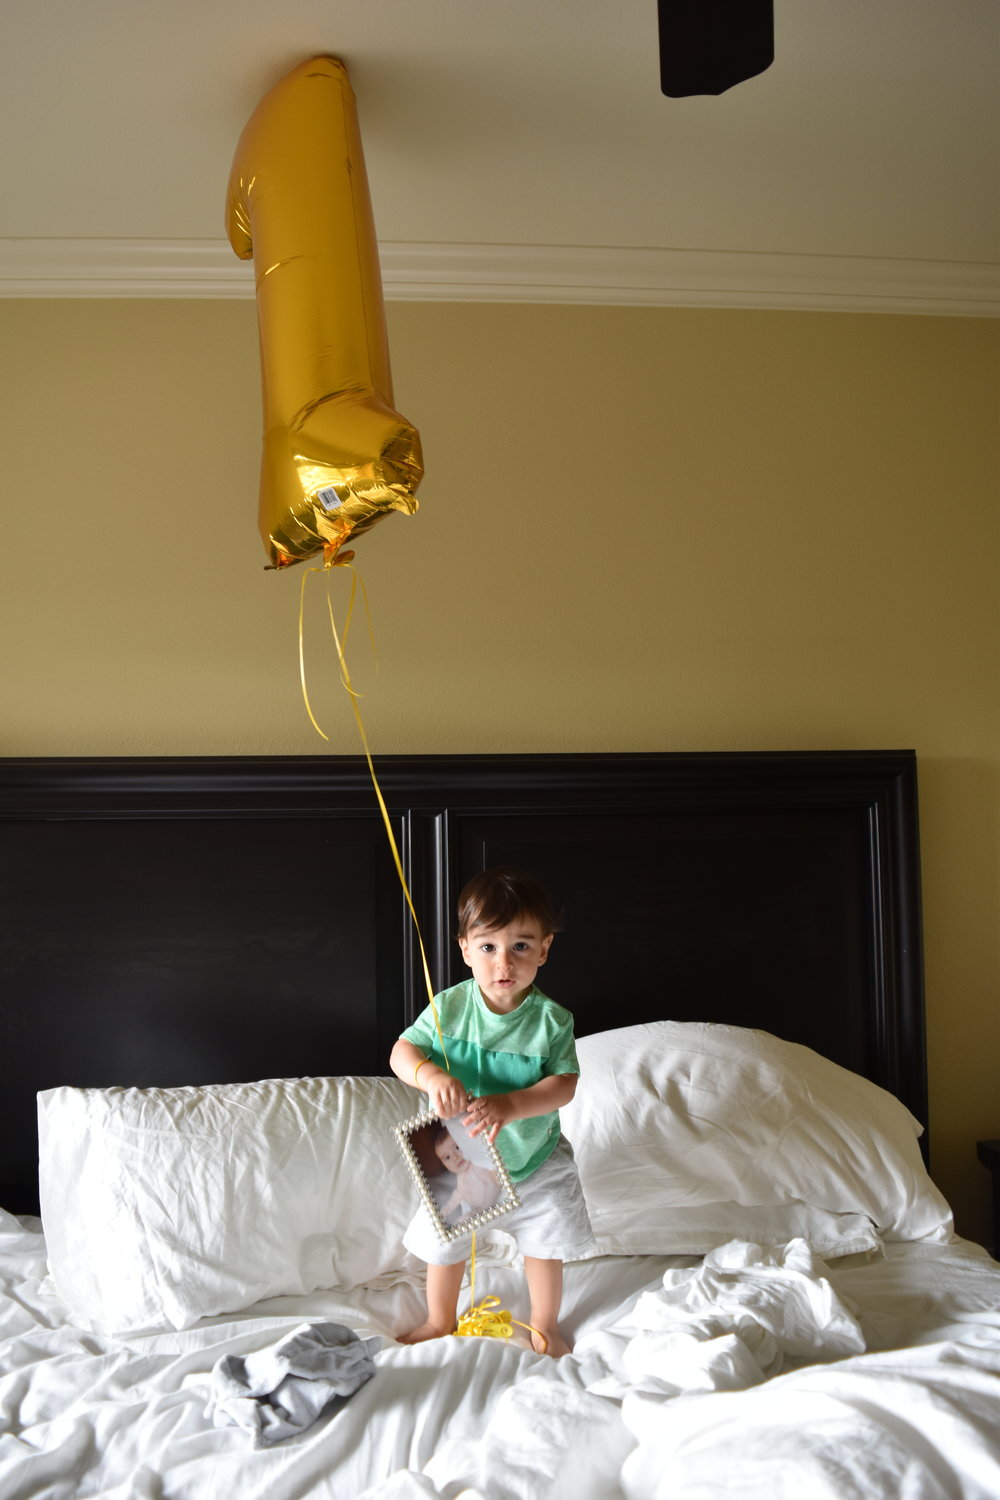 ryan balloon bed